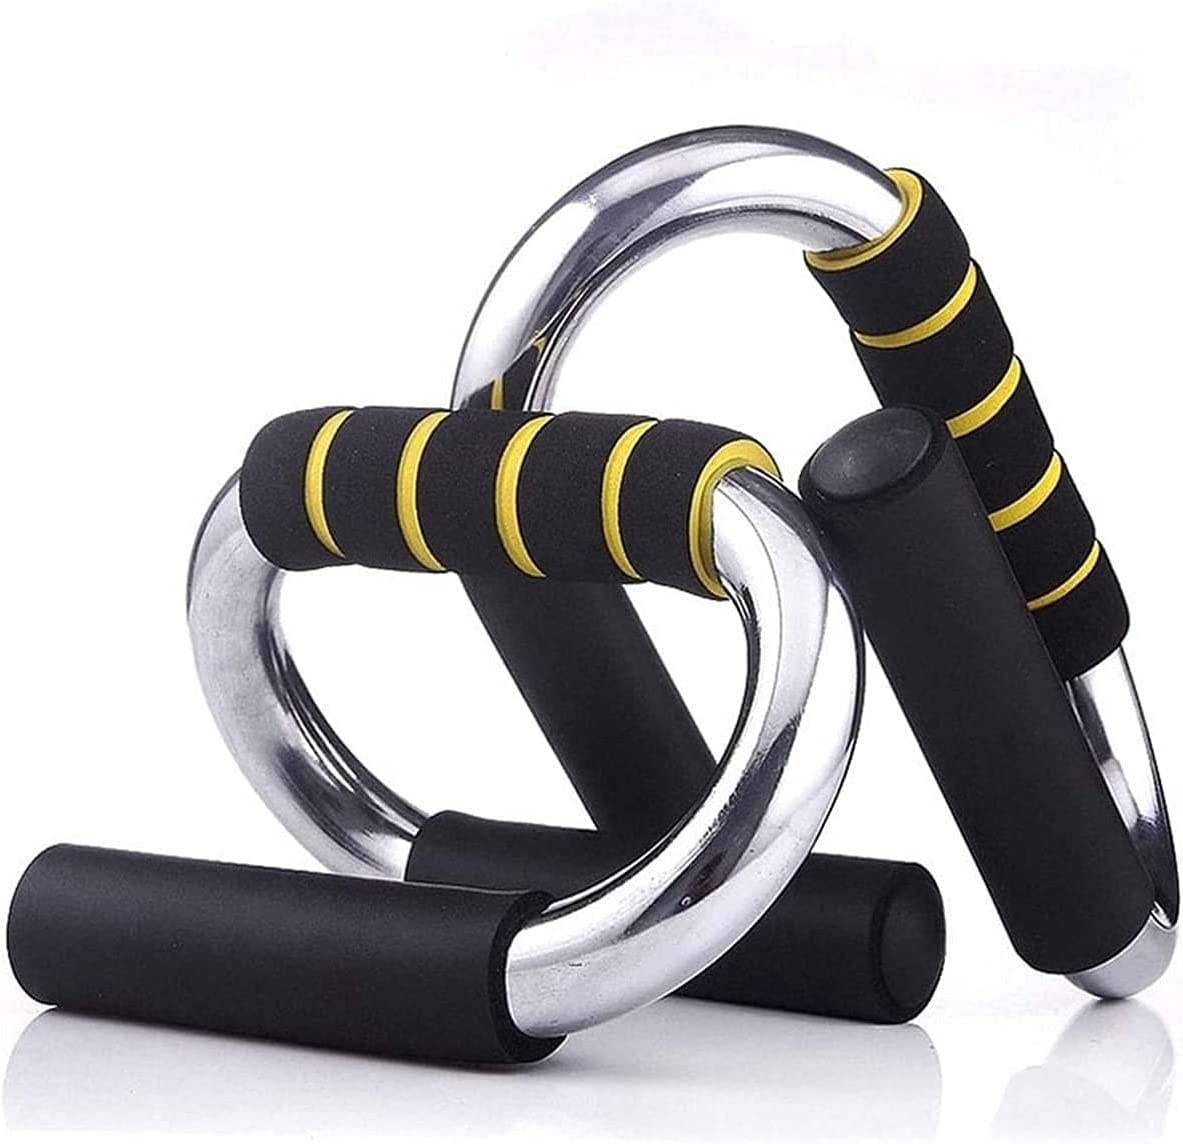 XUERUIGANG Under blast sales Push Up Bars Strength Training Max 65% OFF Workout Home Equipment